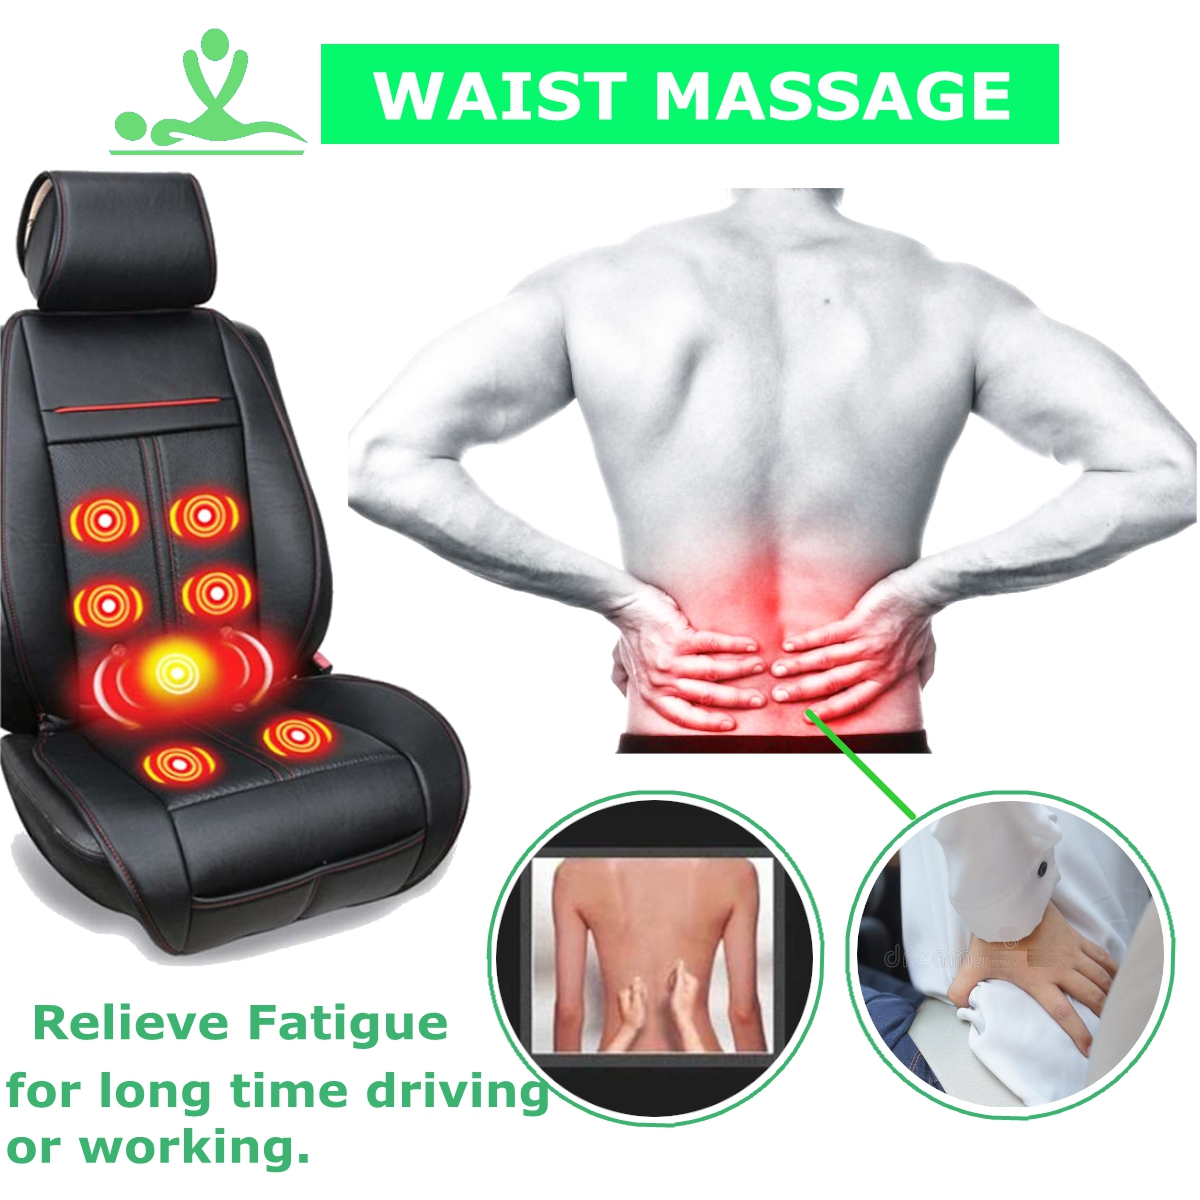 https://ae01.alicdn.com/kf/H9218e539d88b4d21bd5ea69ae0756e5a9/Universal-3-In-1-Car-Seat-Cover-Cushion-Cooling-Warm-Heated-Massage-Chair-with-8-Fan.jpg